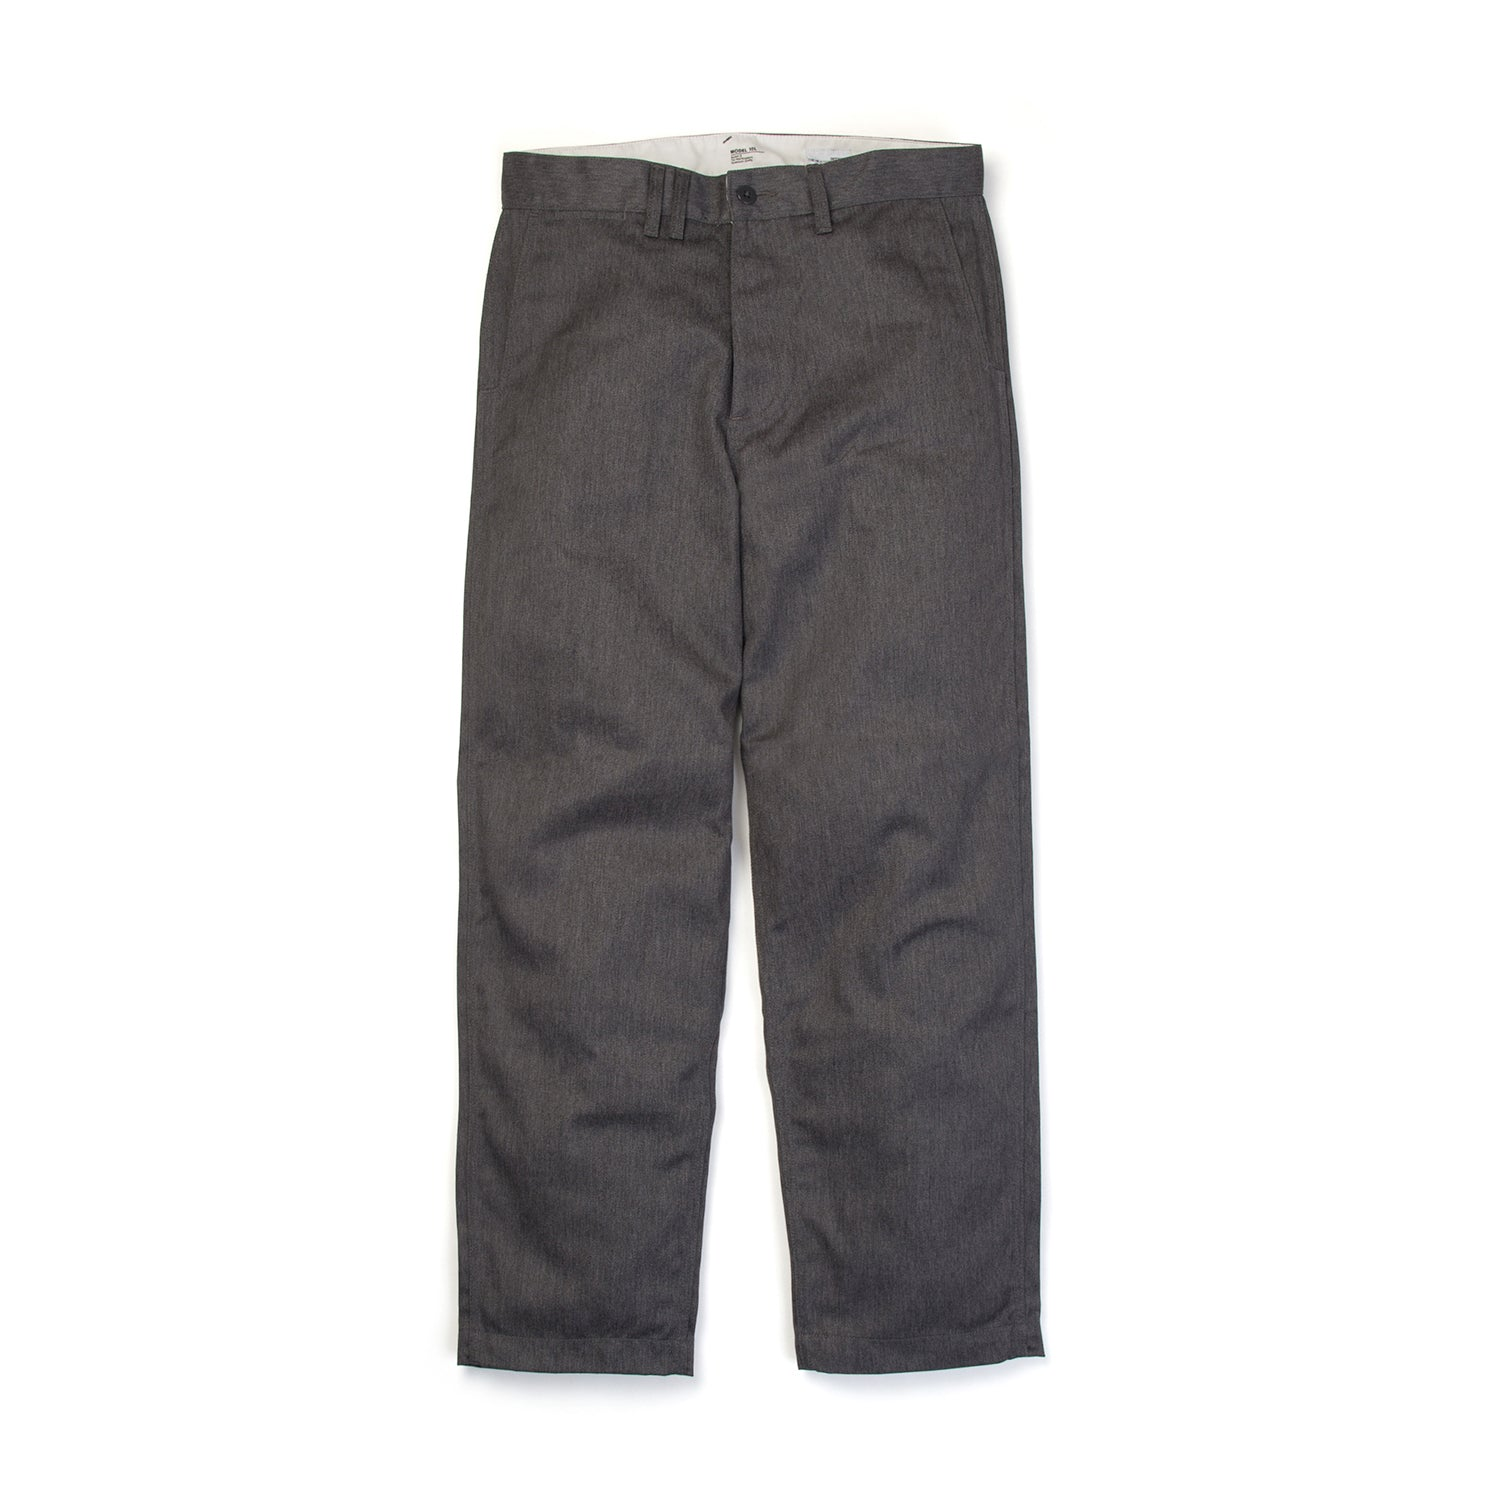 Bedwin 'Ronald' 10/L T/C Chino Pants Gray